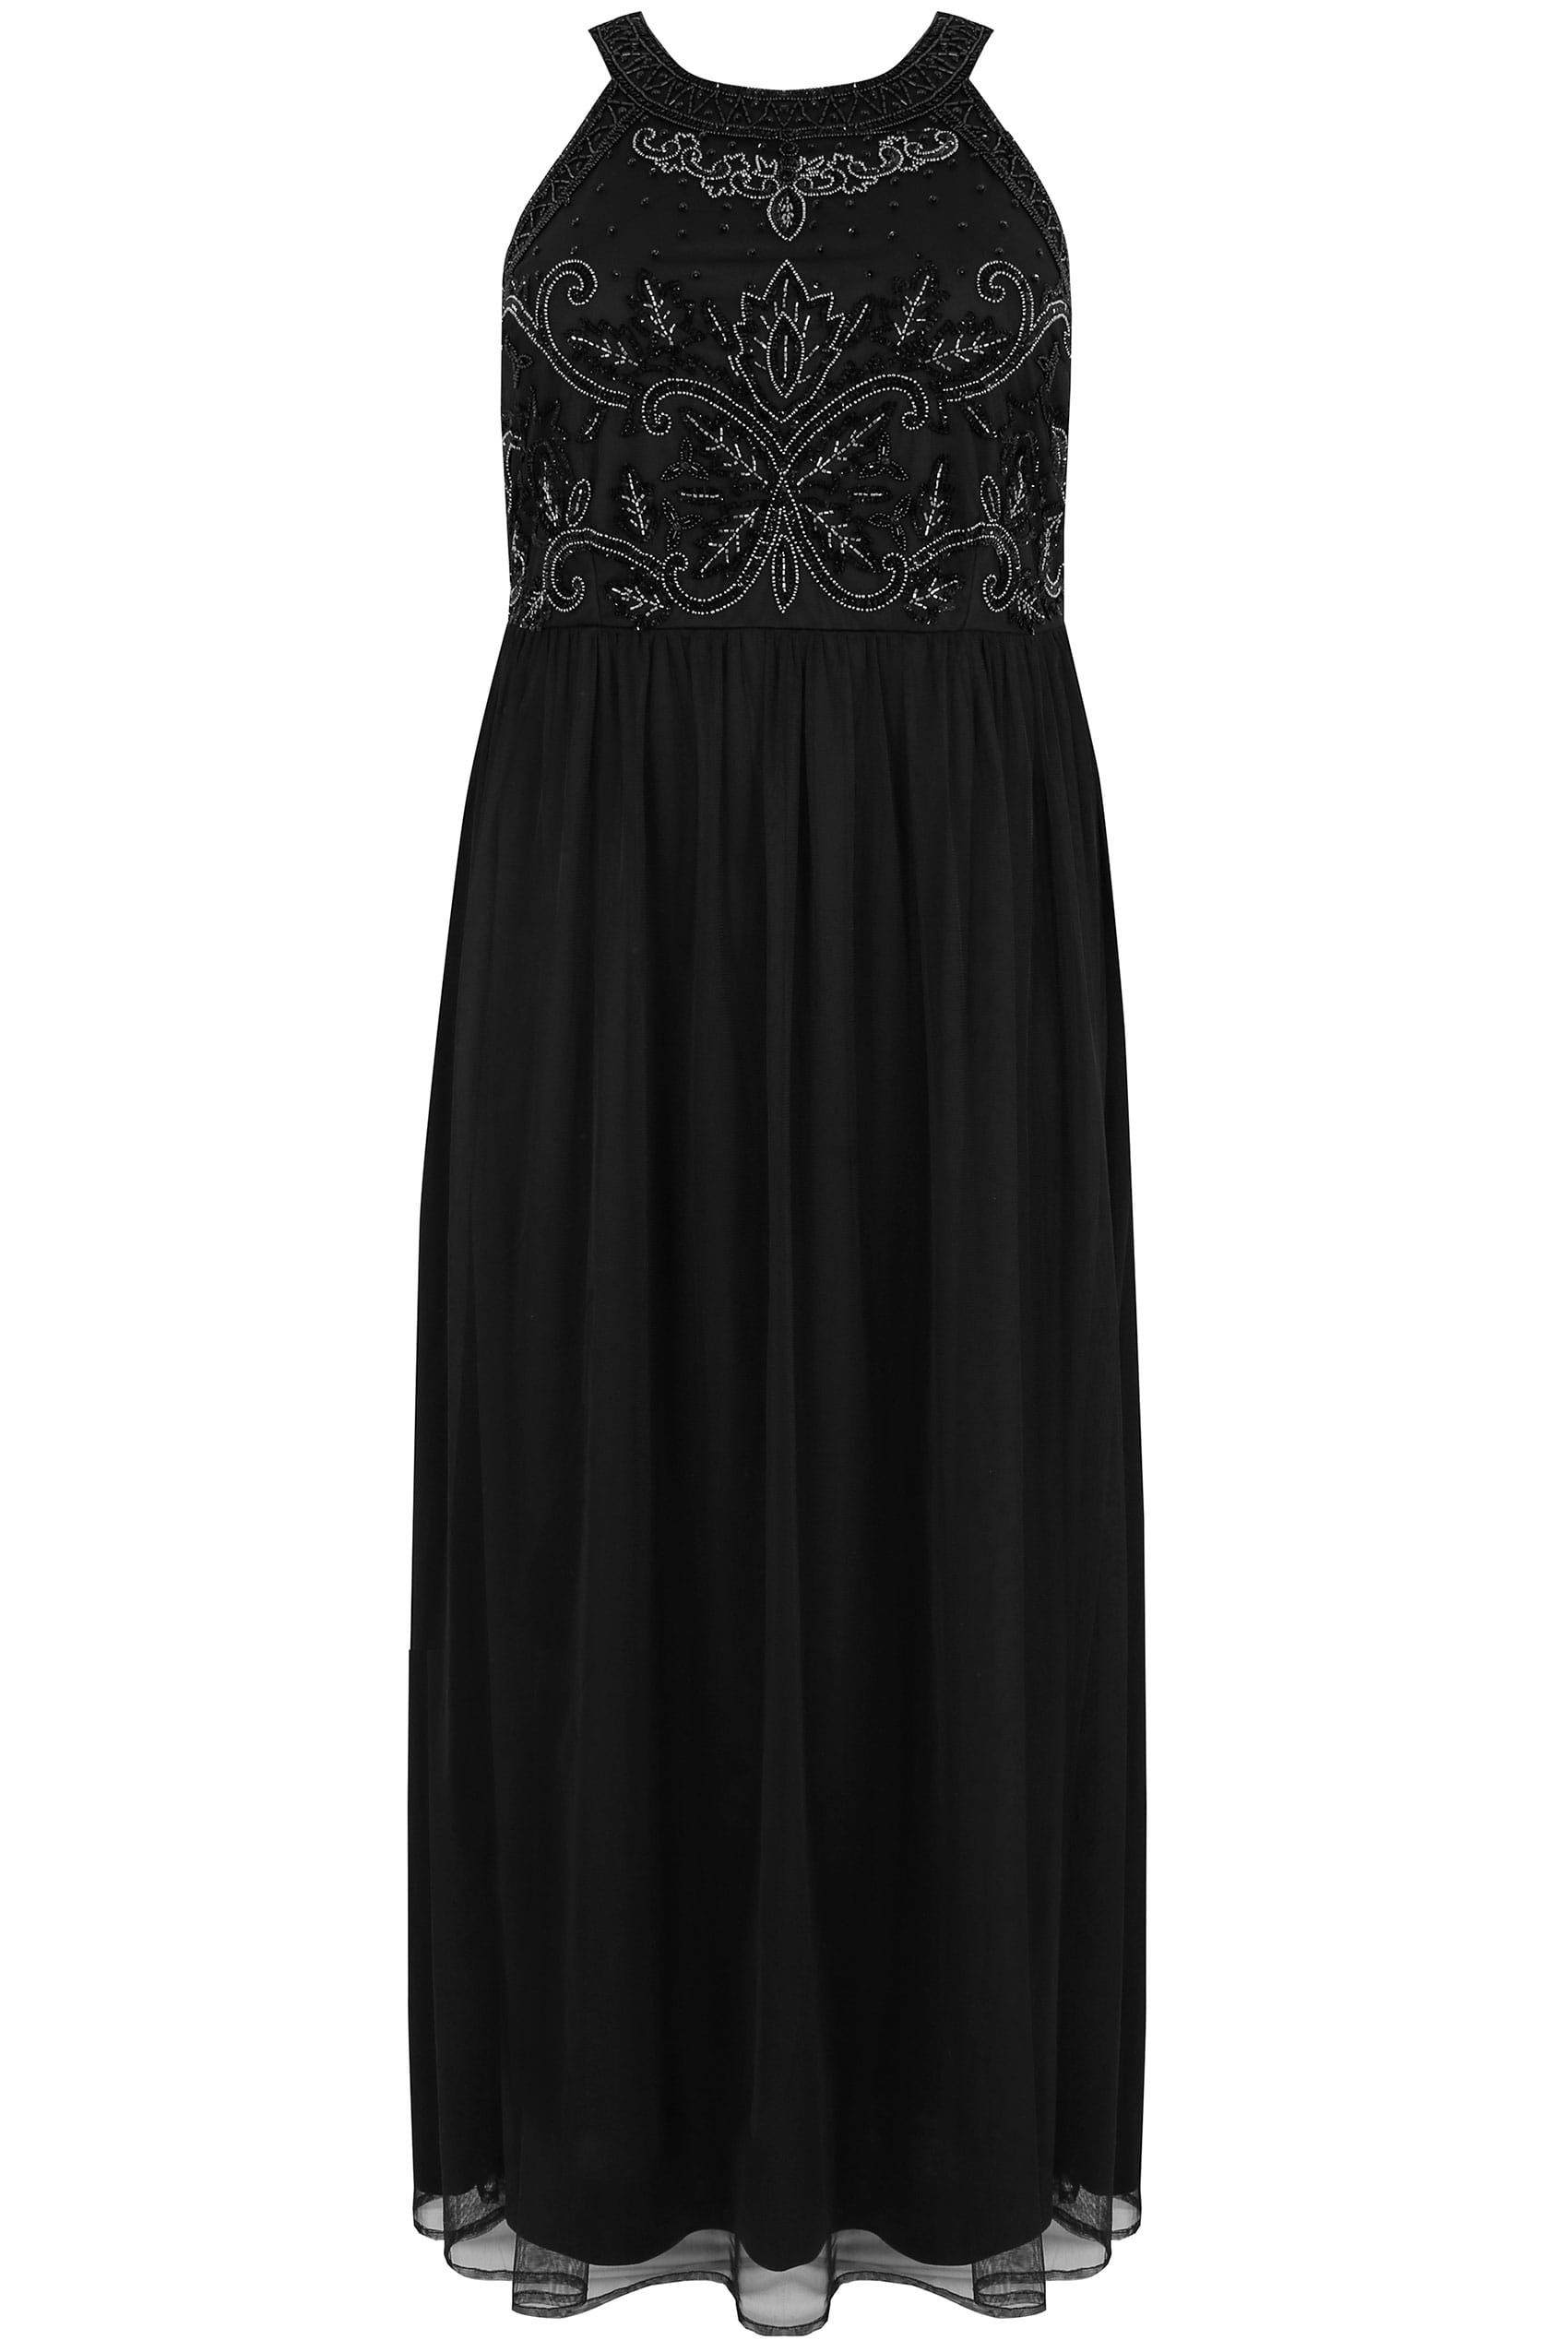 f4168e92ef2 LUXE Black High Neck Embellished Maxi Dress